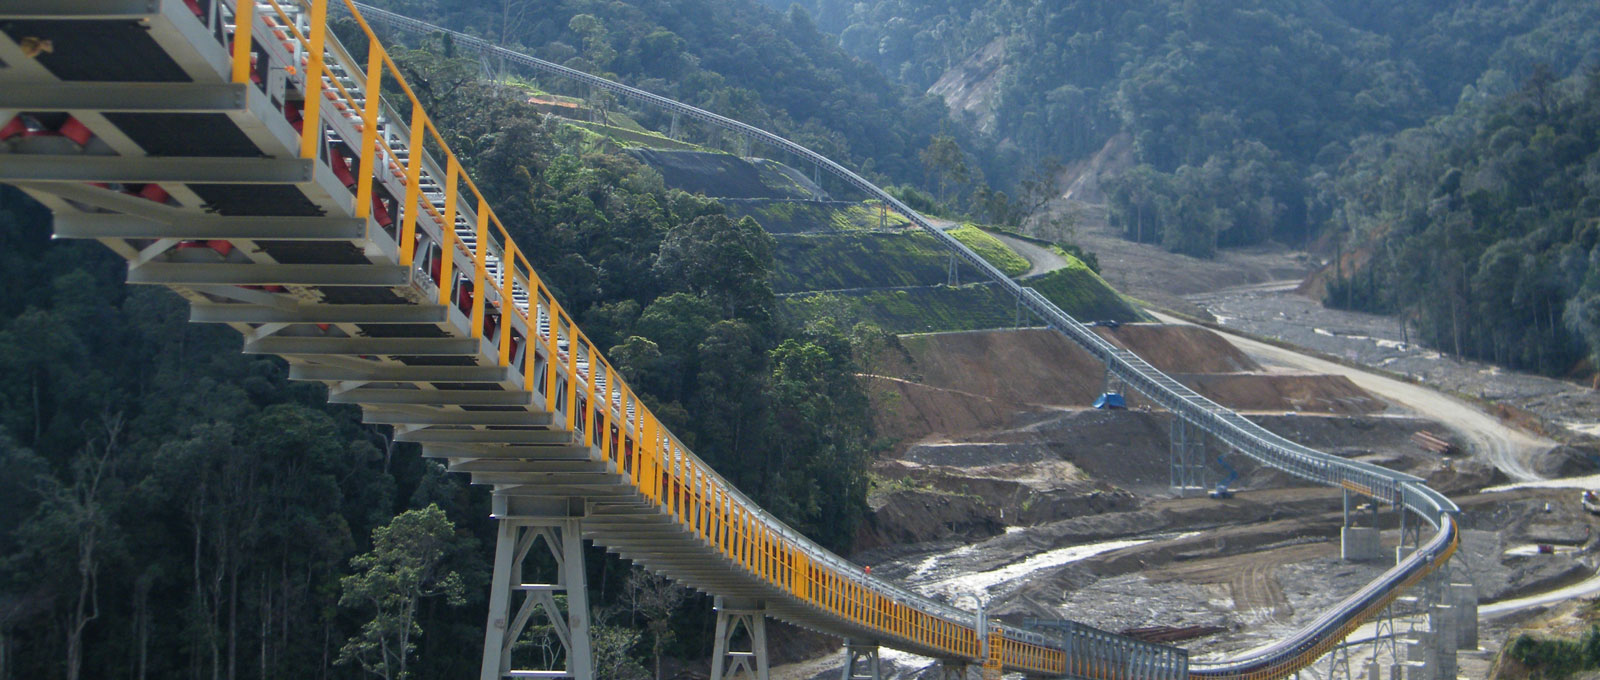 Mining and Conveying Fabrication and Construction - Sun Engineering Australia